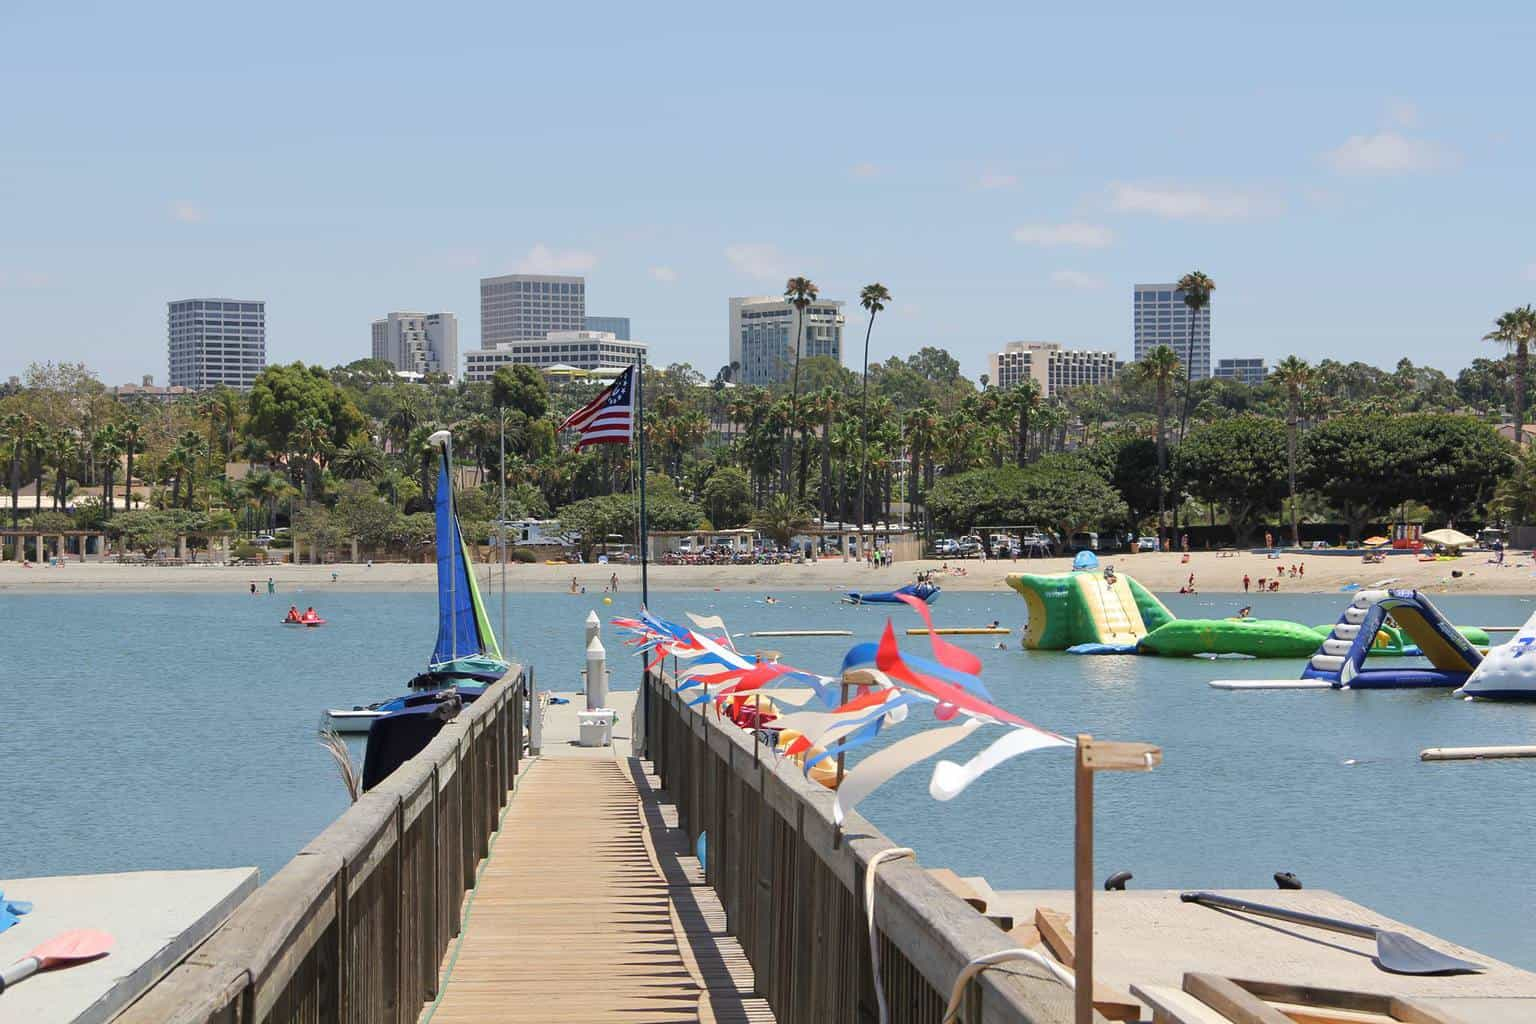 Check out this list of 20+ Water Parks in Southern California